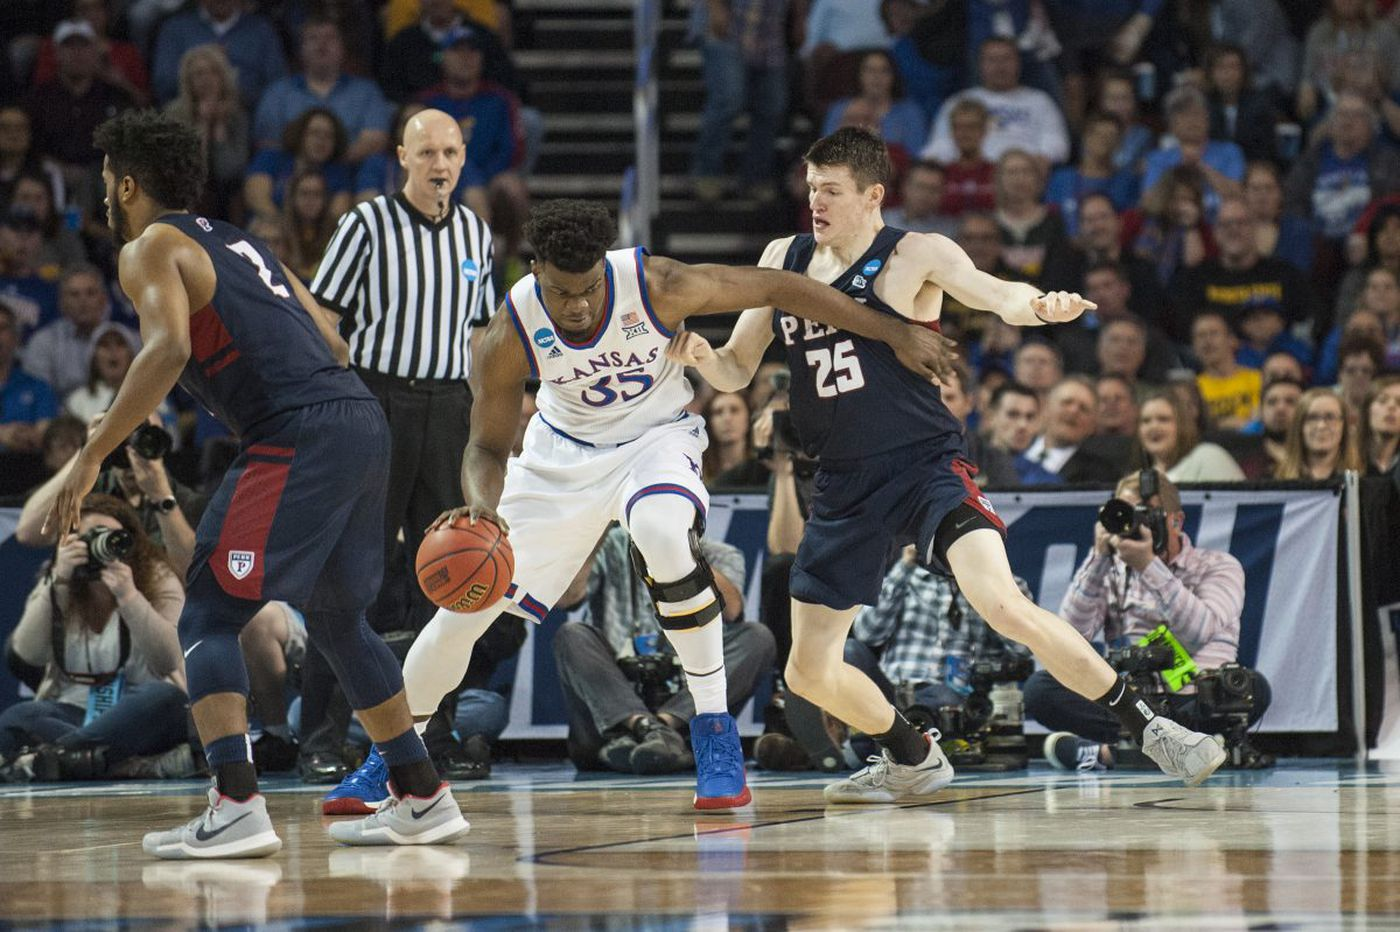 Penn basketball will have high expectations for next season